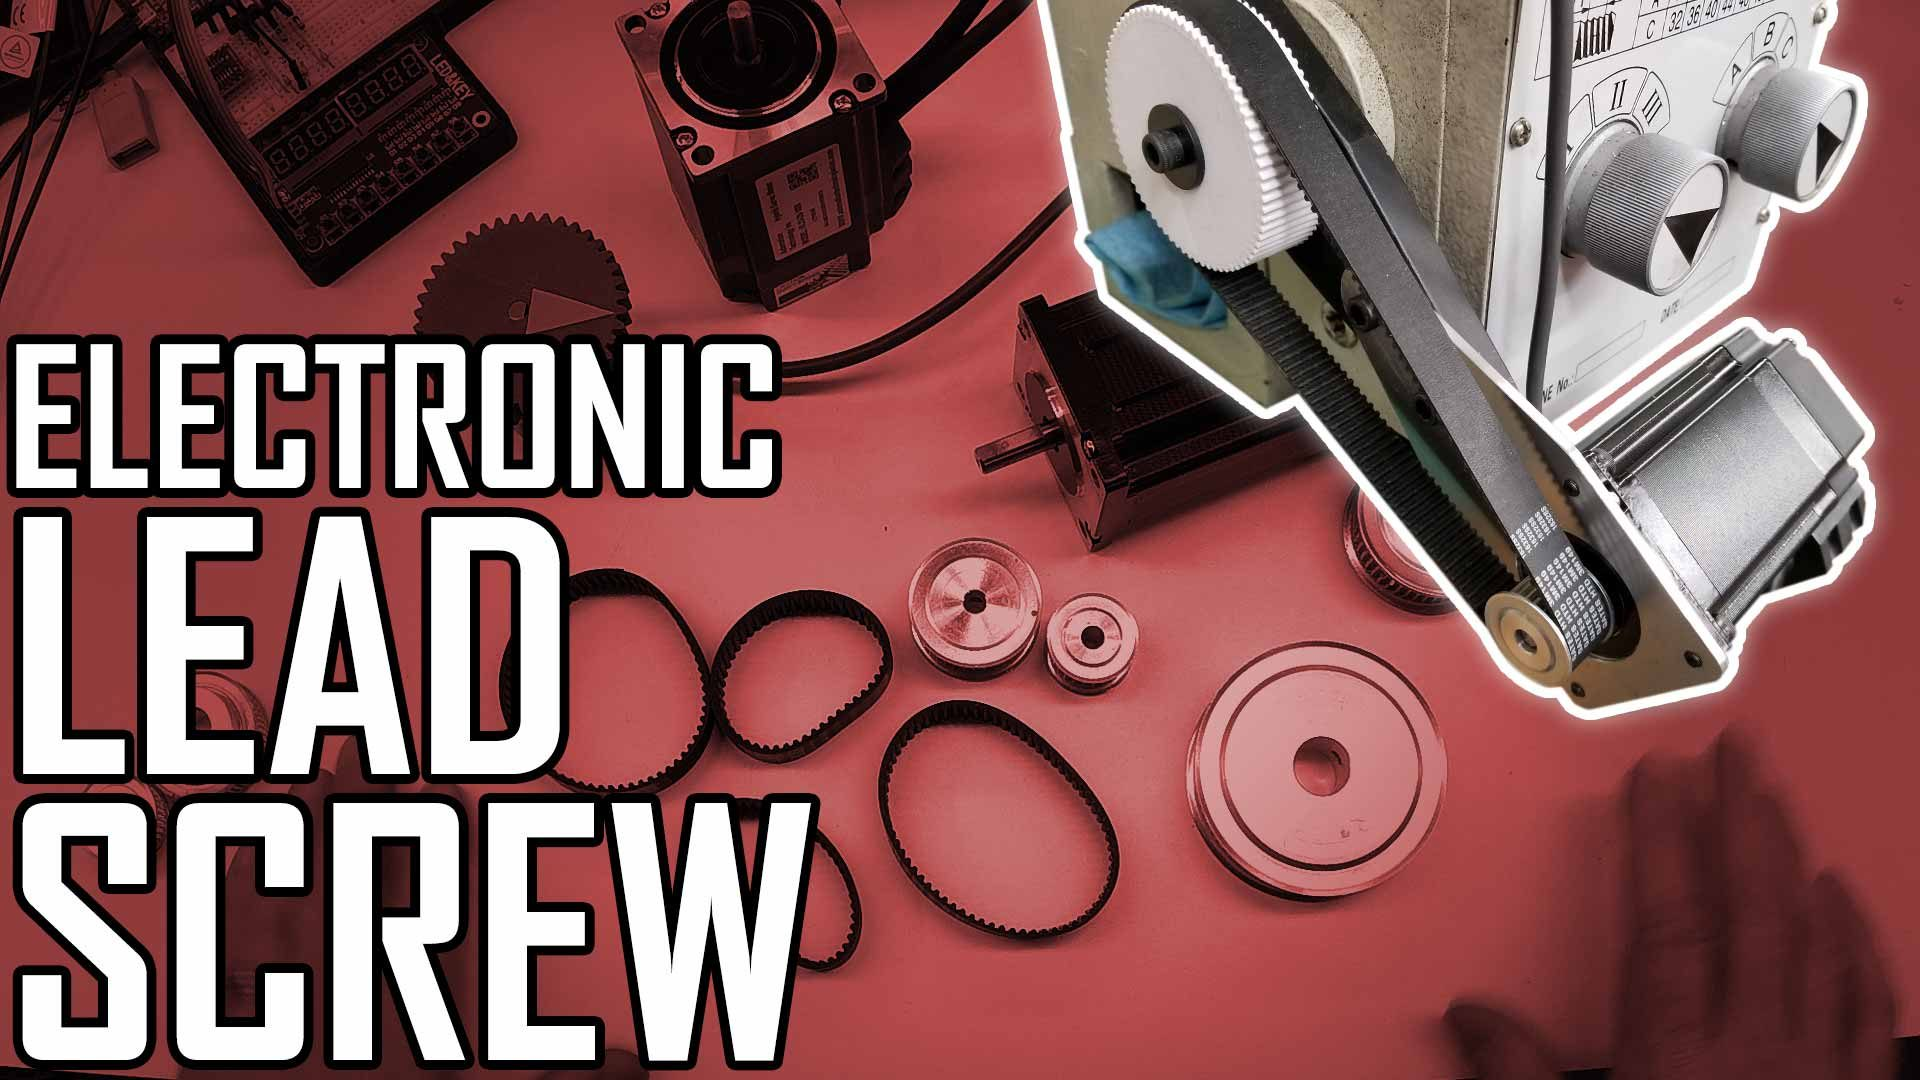 Lathe Electronic Leadscrew Part 5: Mounting the Encoder and Servo on the Lathe